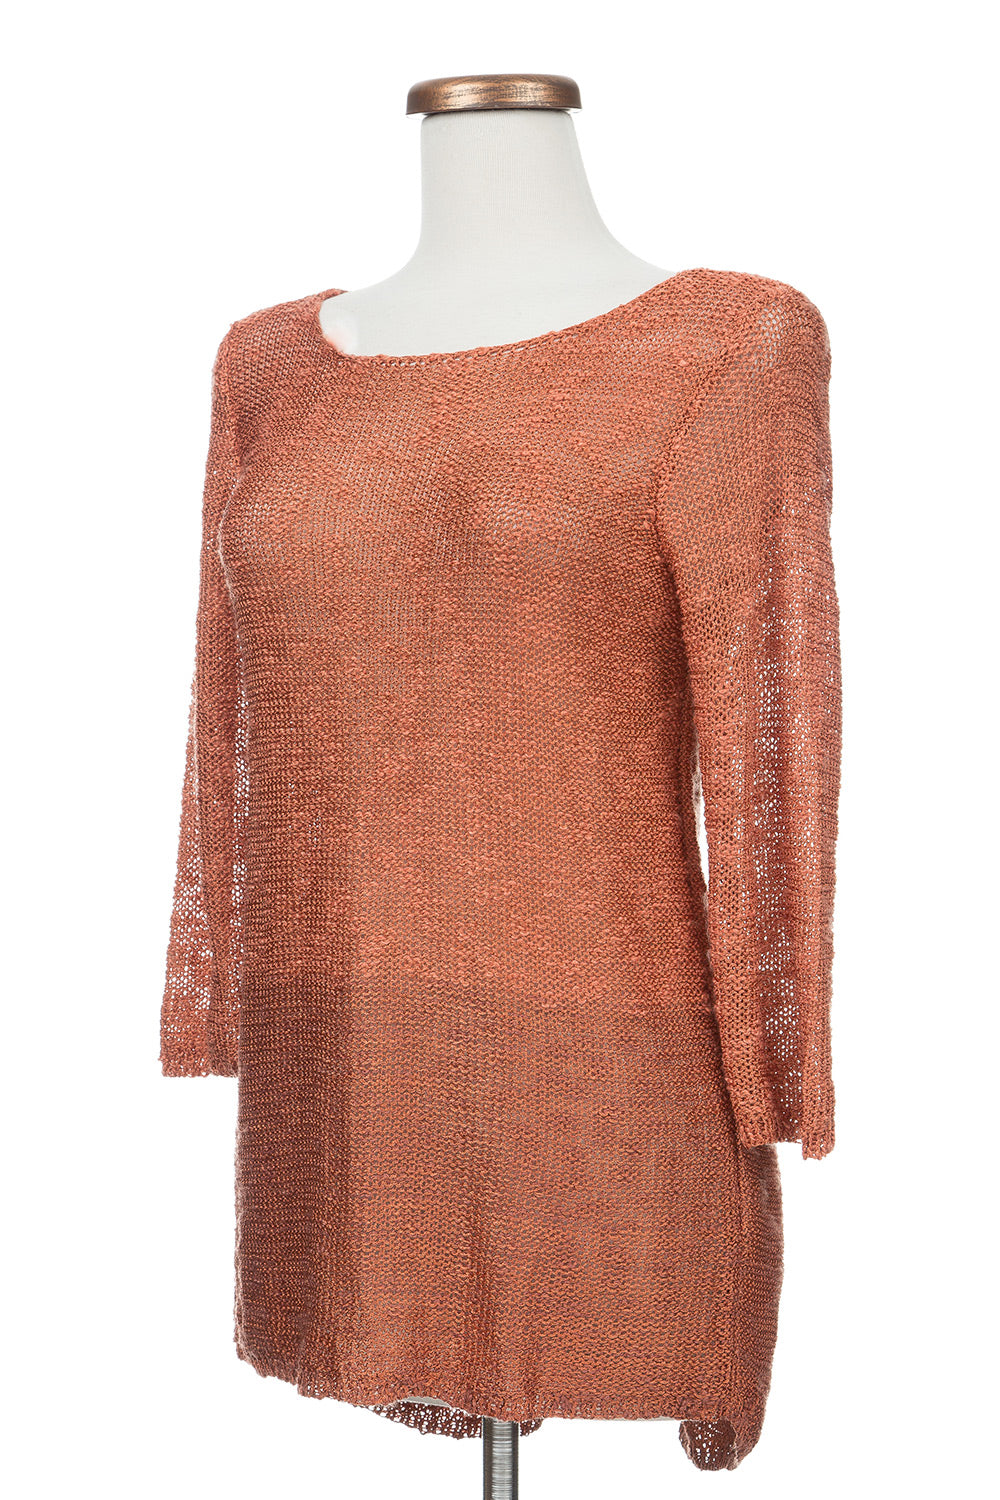 Type 3 Copper Mine Sweater